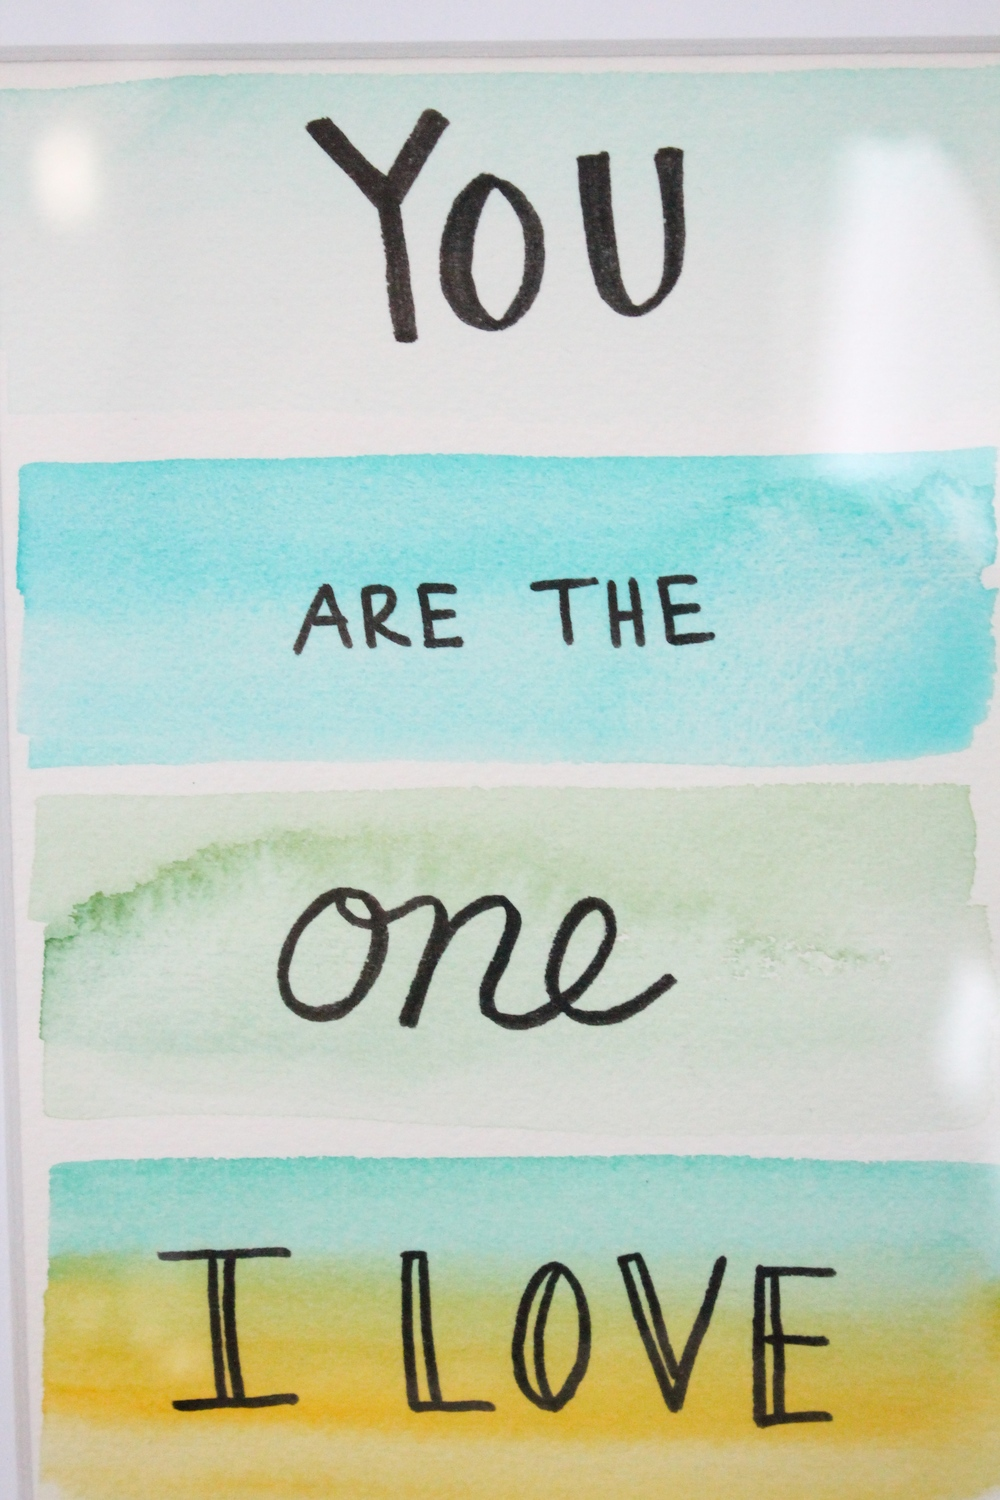 Hand made watercolor saying by Tessie Fay.